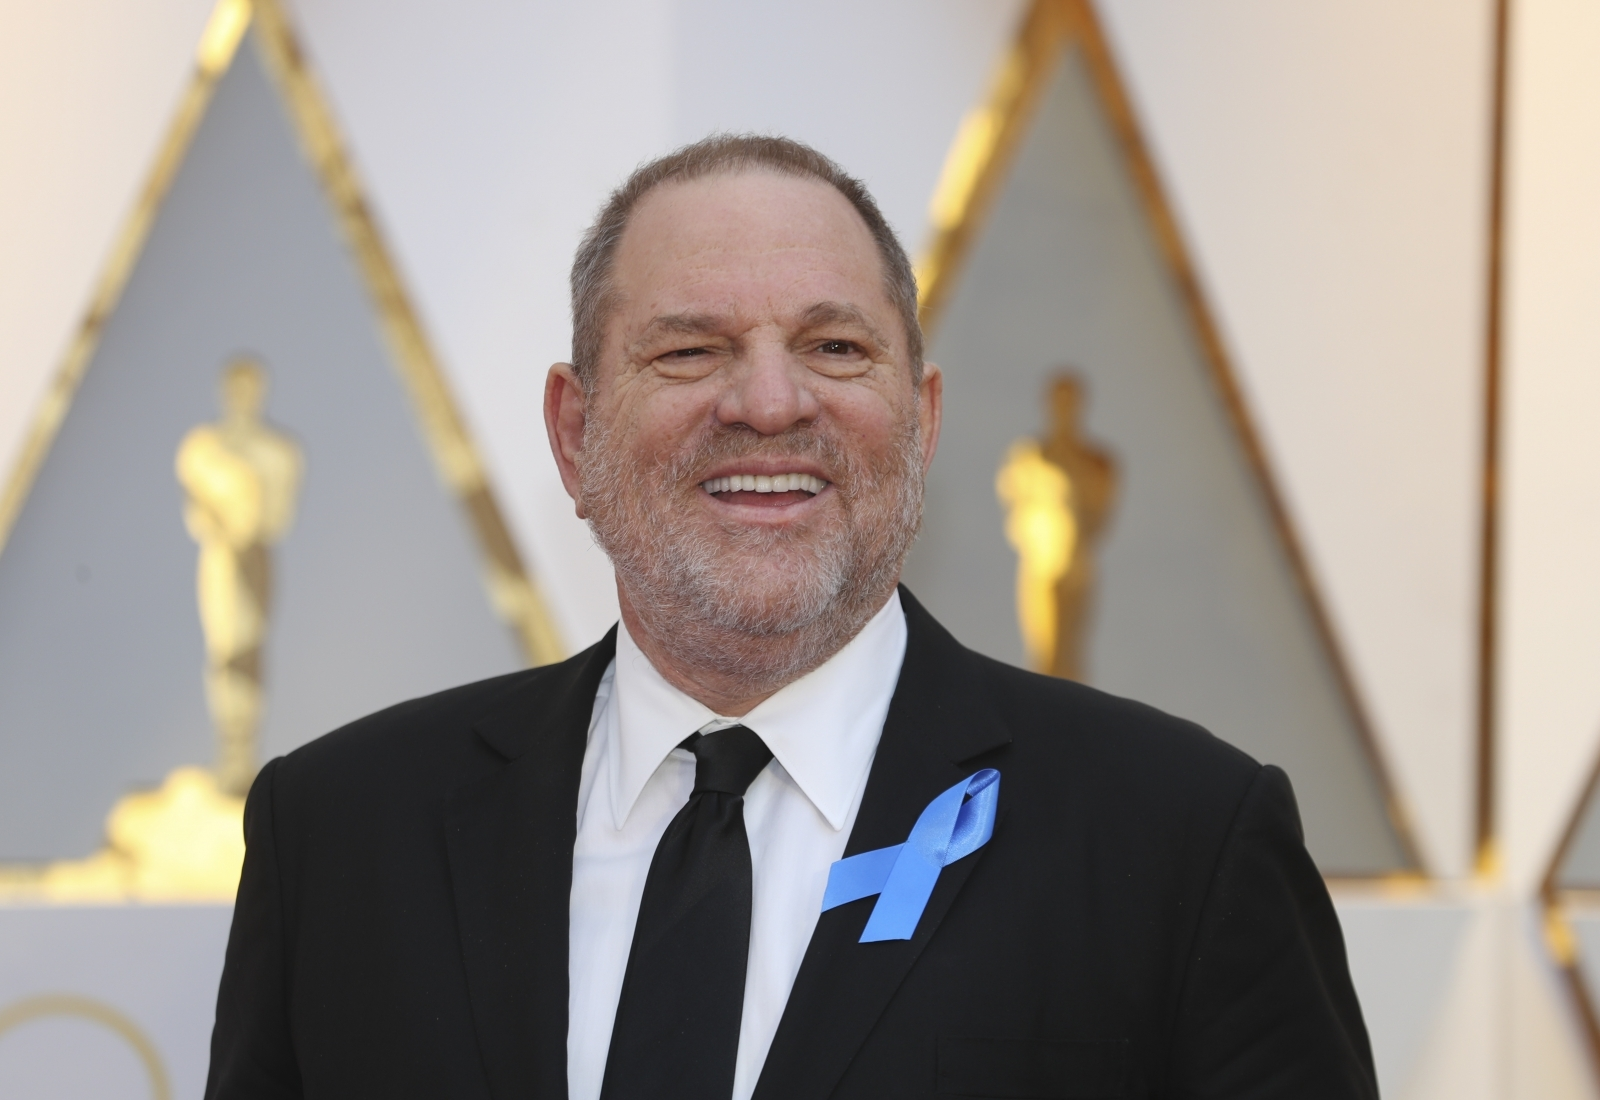 Harvey Weinstein's name will reportedly be taken off movie and TV projects